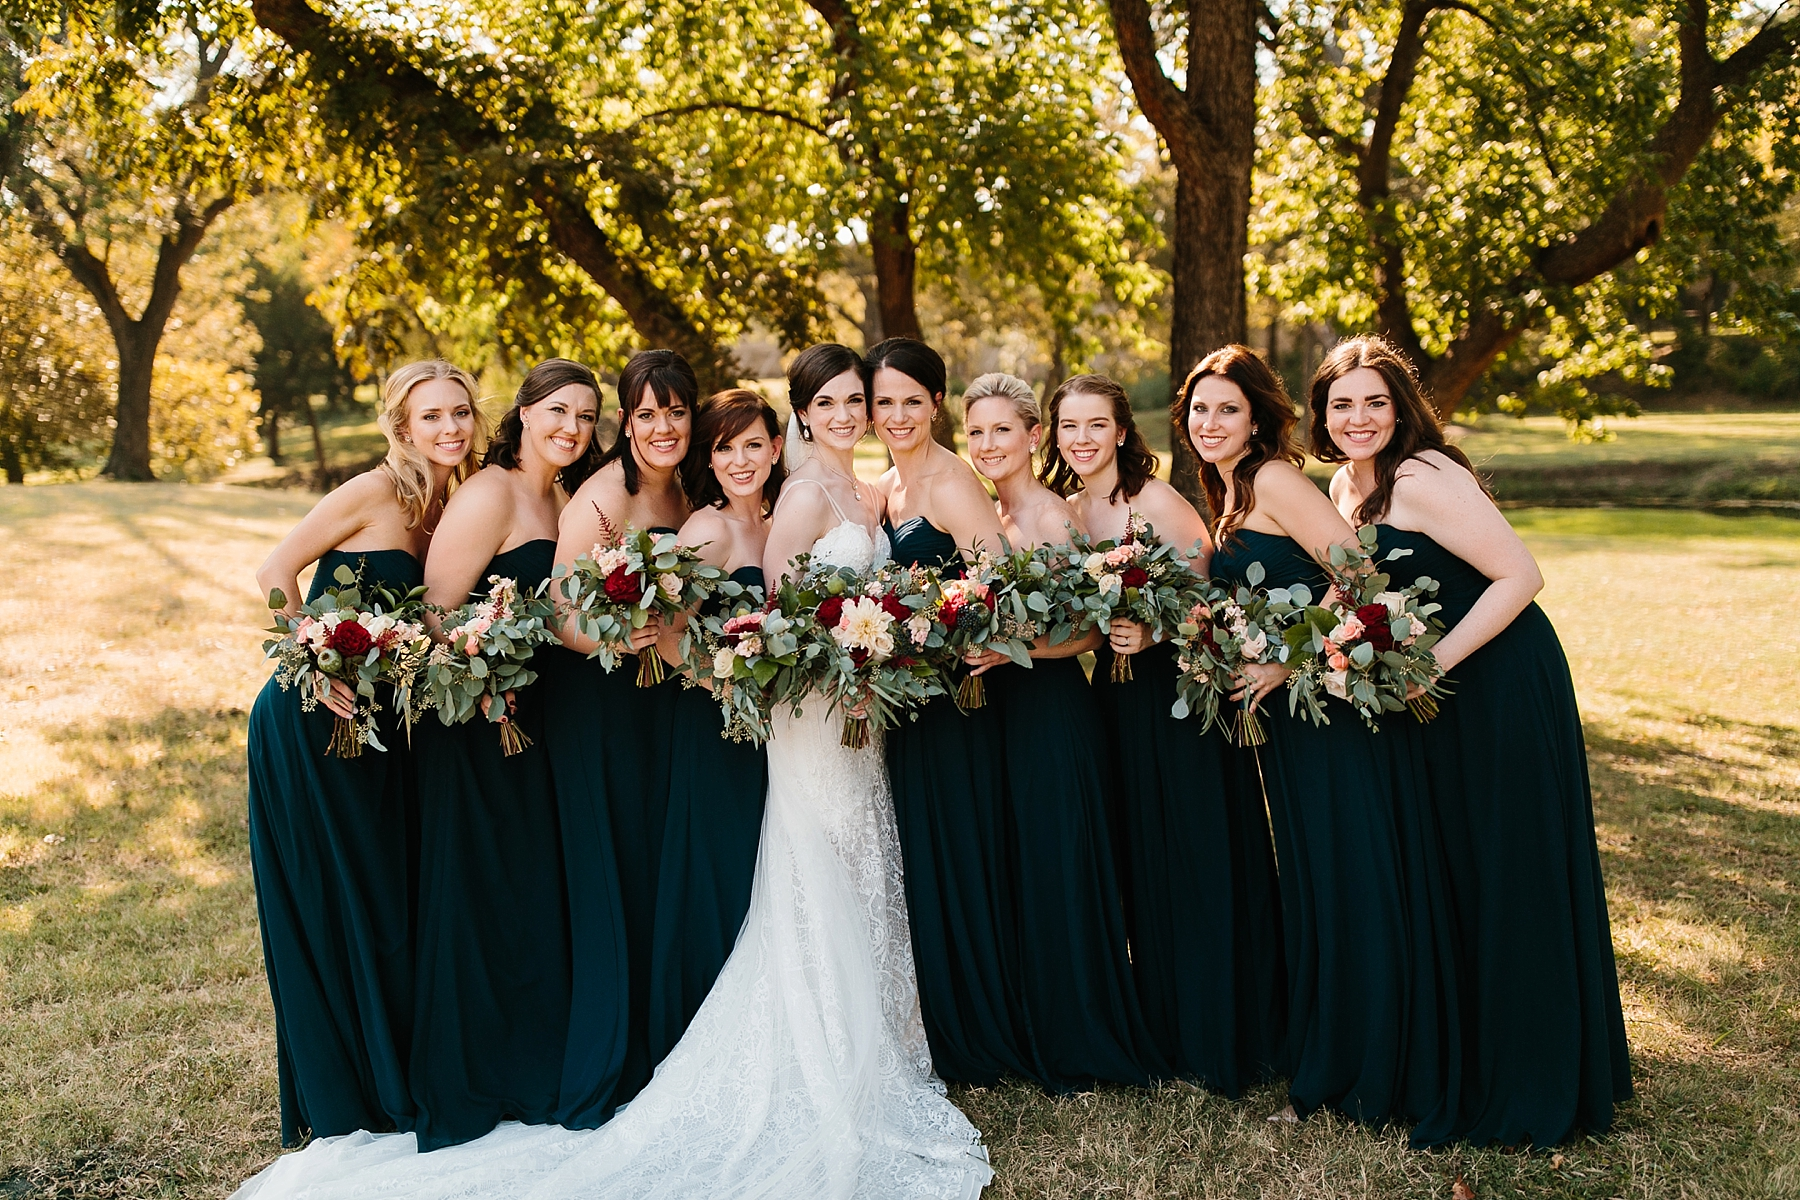 Emily + Caleb _ an elegant, intentional, industrial style wedding with navy + gold accents at 6500 in Dallas, TX by North Texas Wedding Photographer Rachel Meagan Photography _ 062